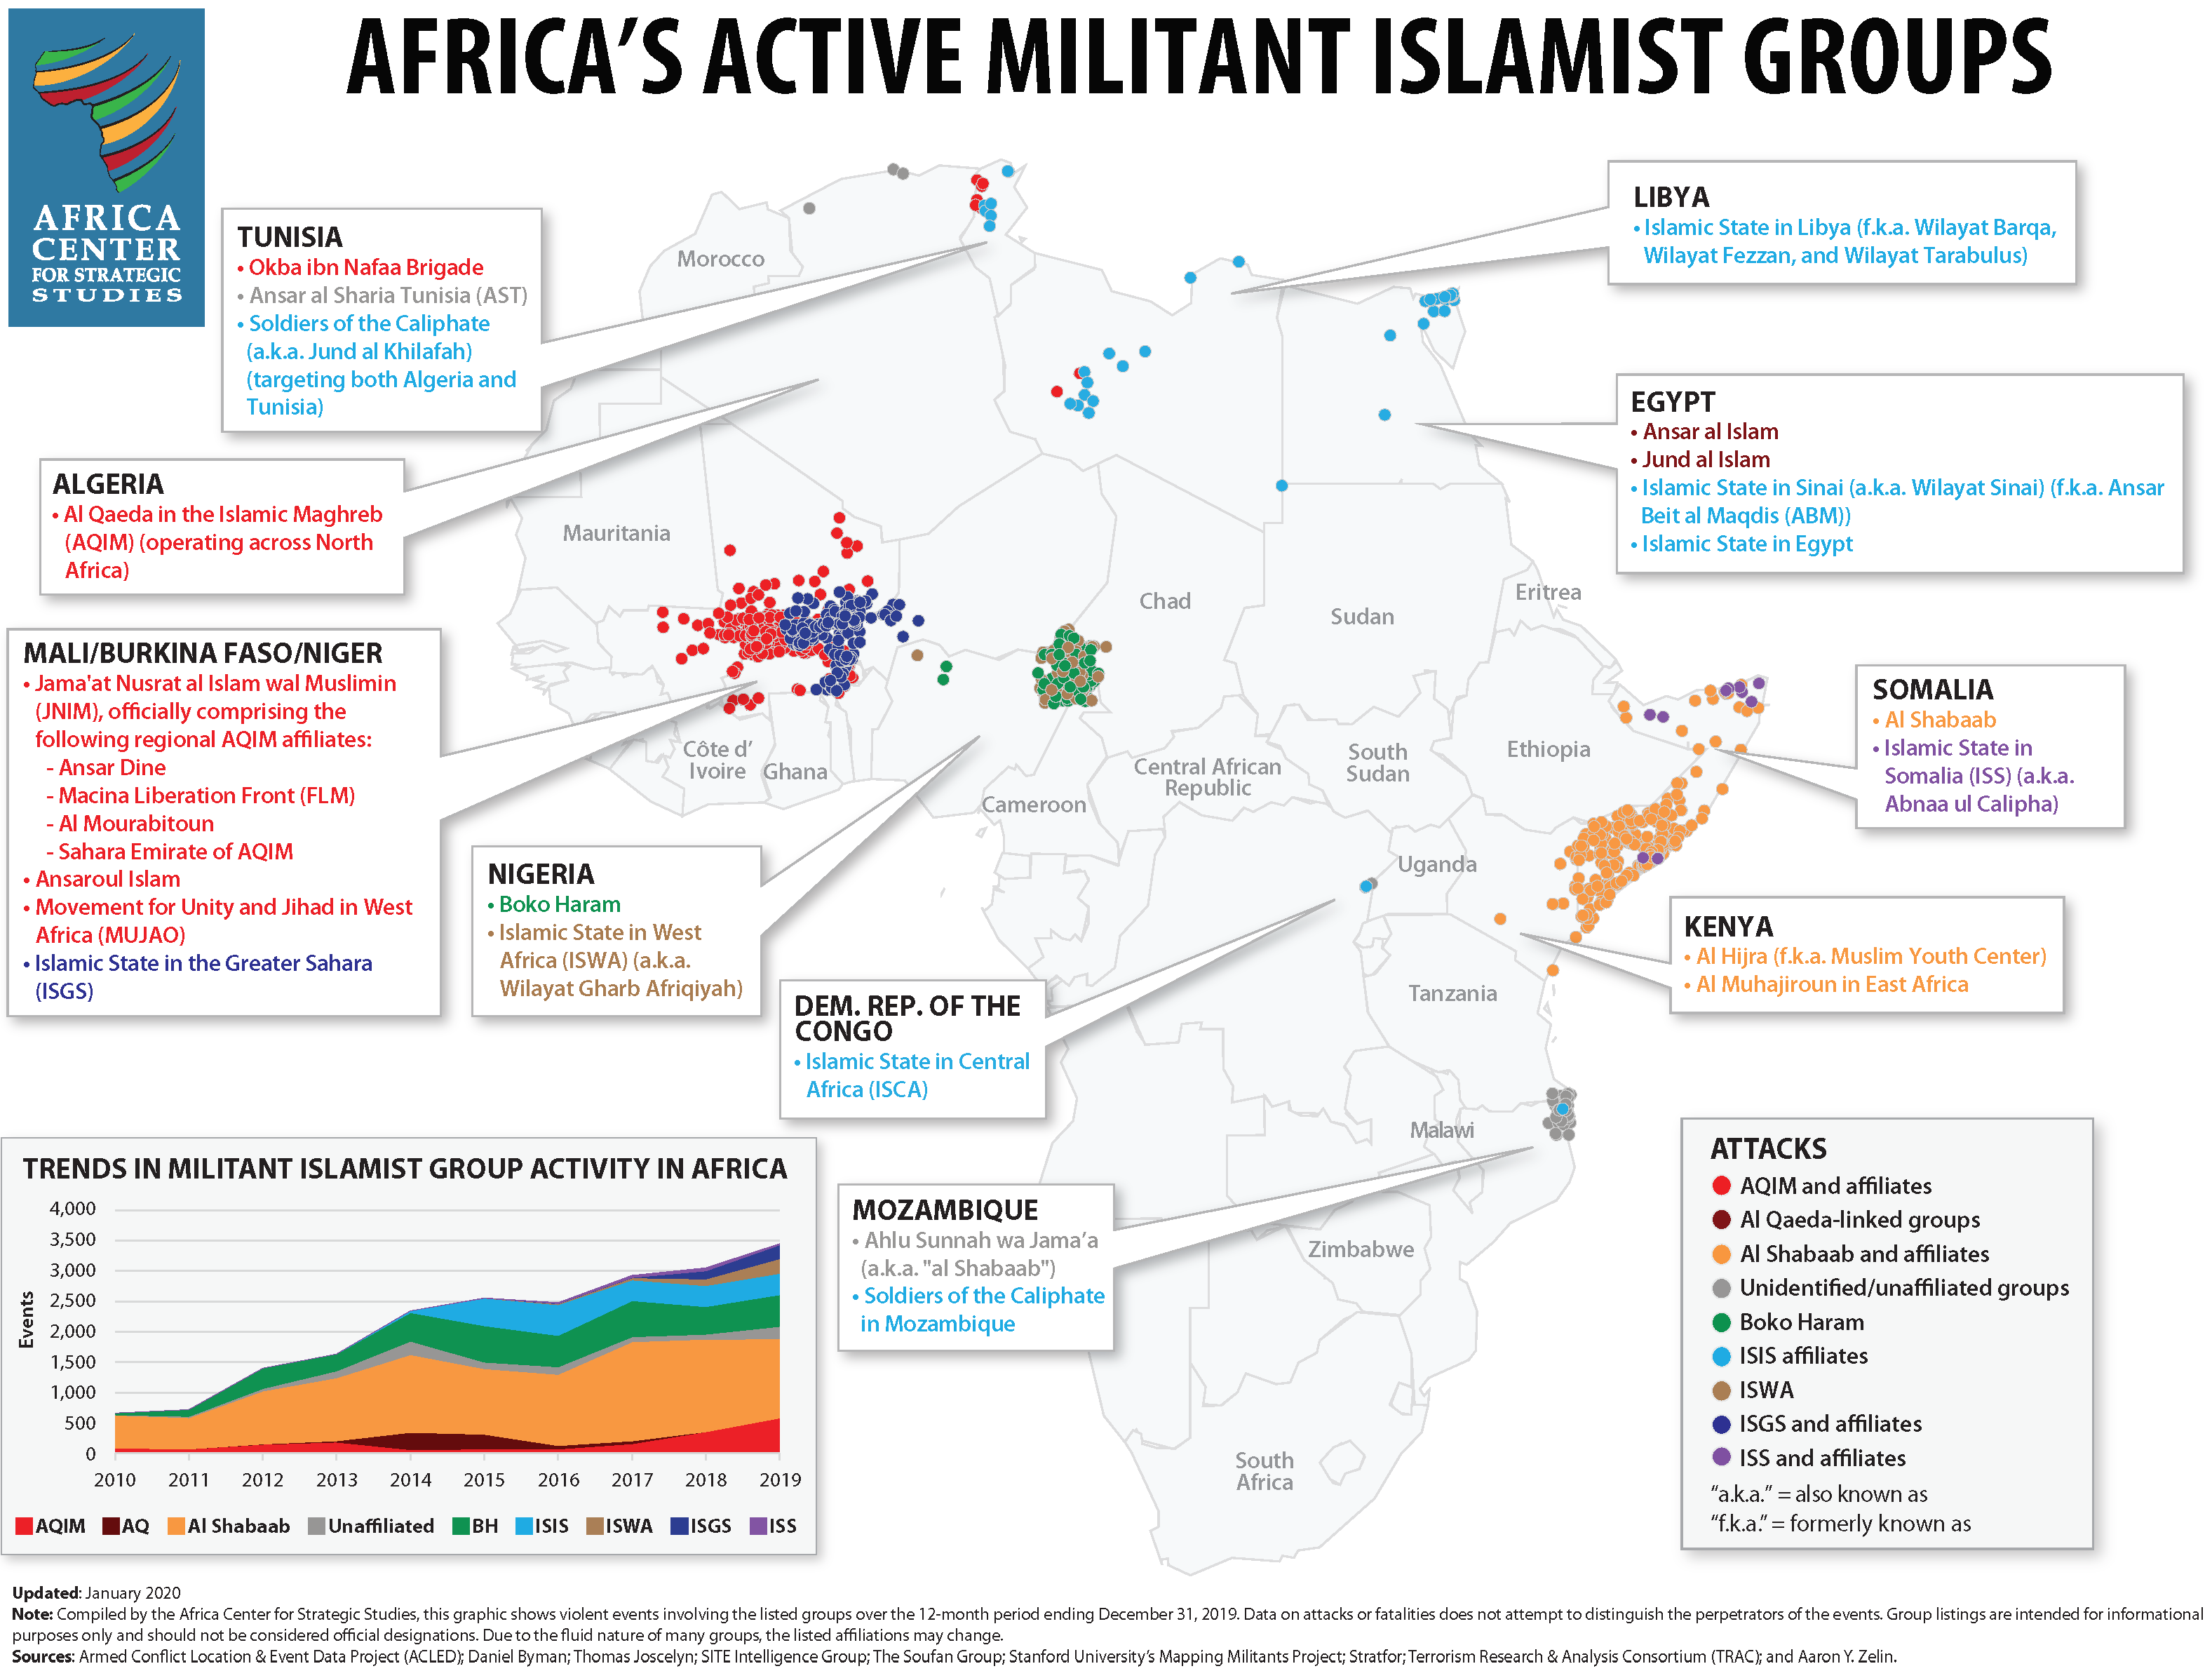 Militant Islamist Groups in Africa - 2019 activity